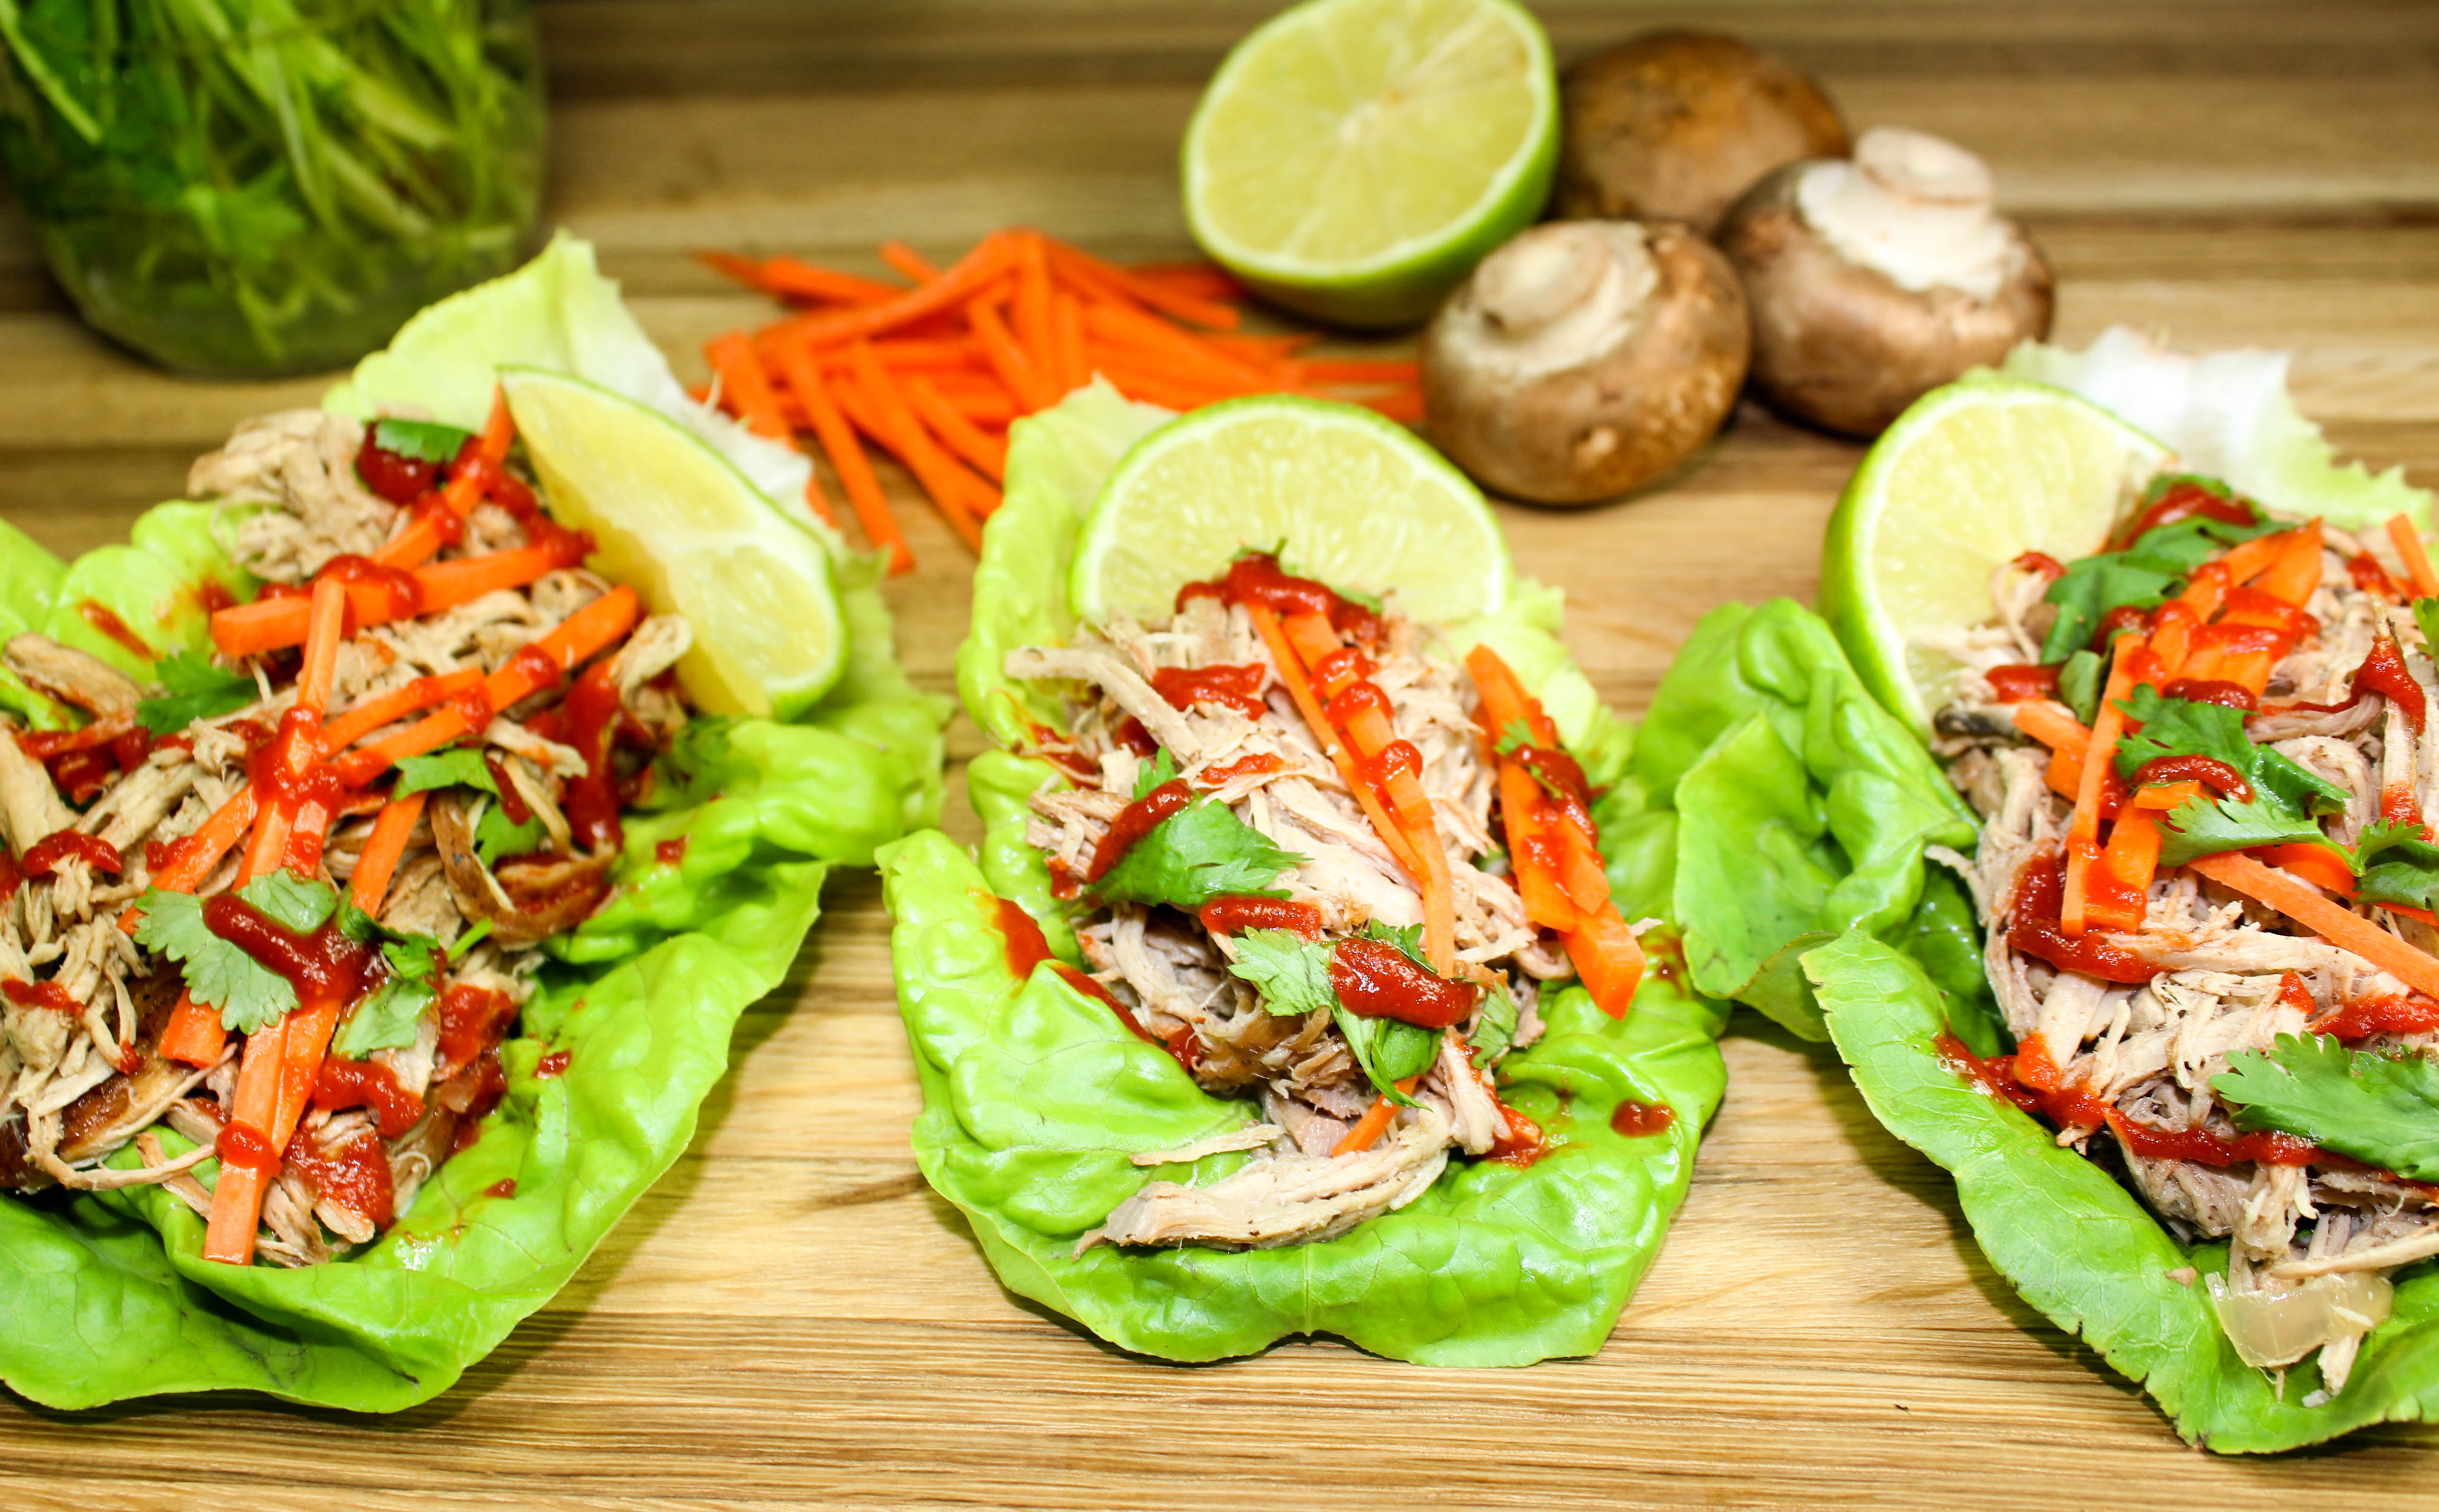 Slow Cooker Asian Pork Lettuce Wraps are the perfect meal when you want a flavorful meal, but don't want all the guilt. Low-carb and low-fat! Weight Watchers friendly recipe. www.bitesofflavor.com